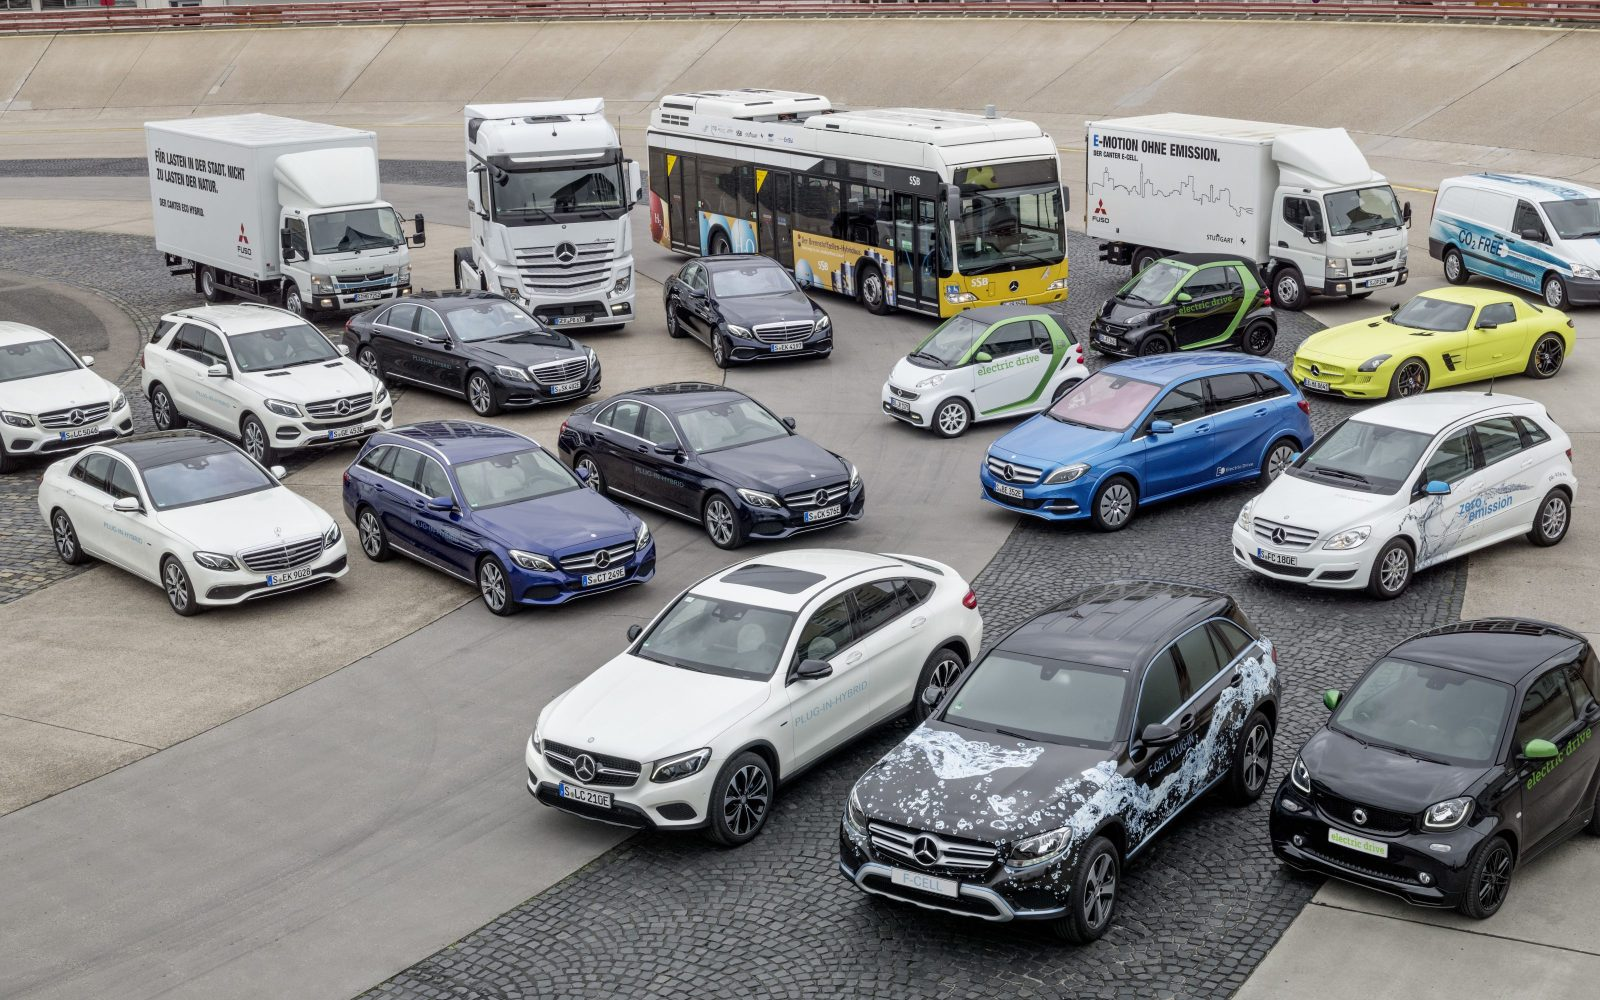 The World S Electric Vehicle Fleet Surpassed 1 Million Cars Now To